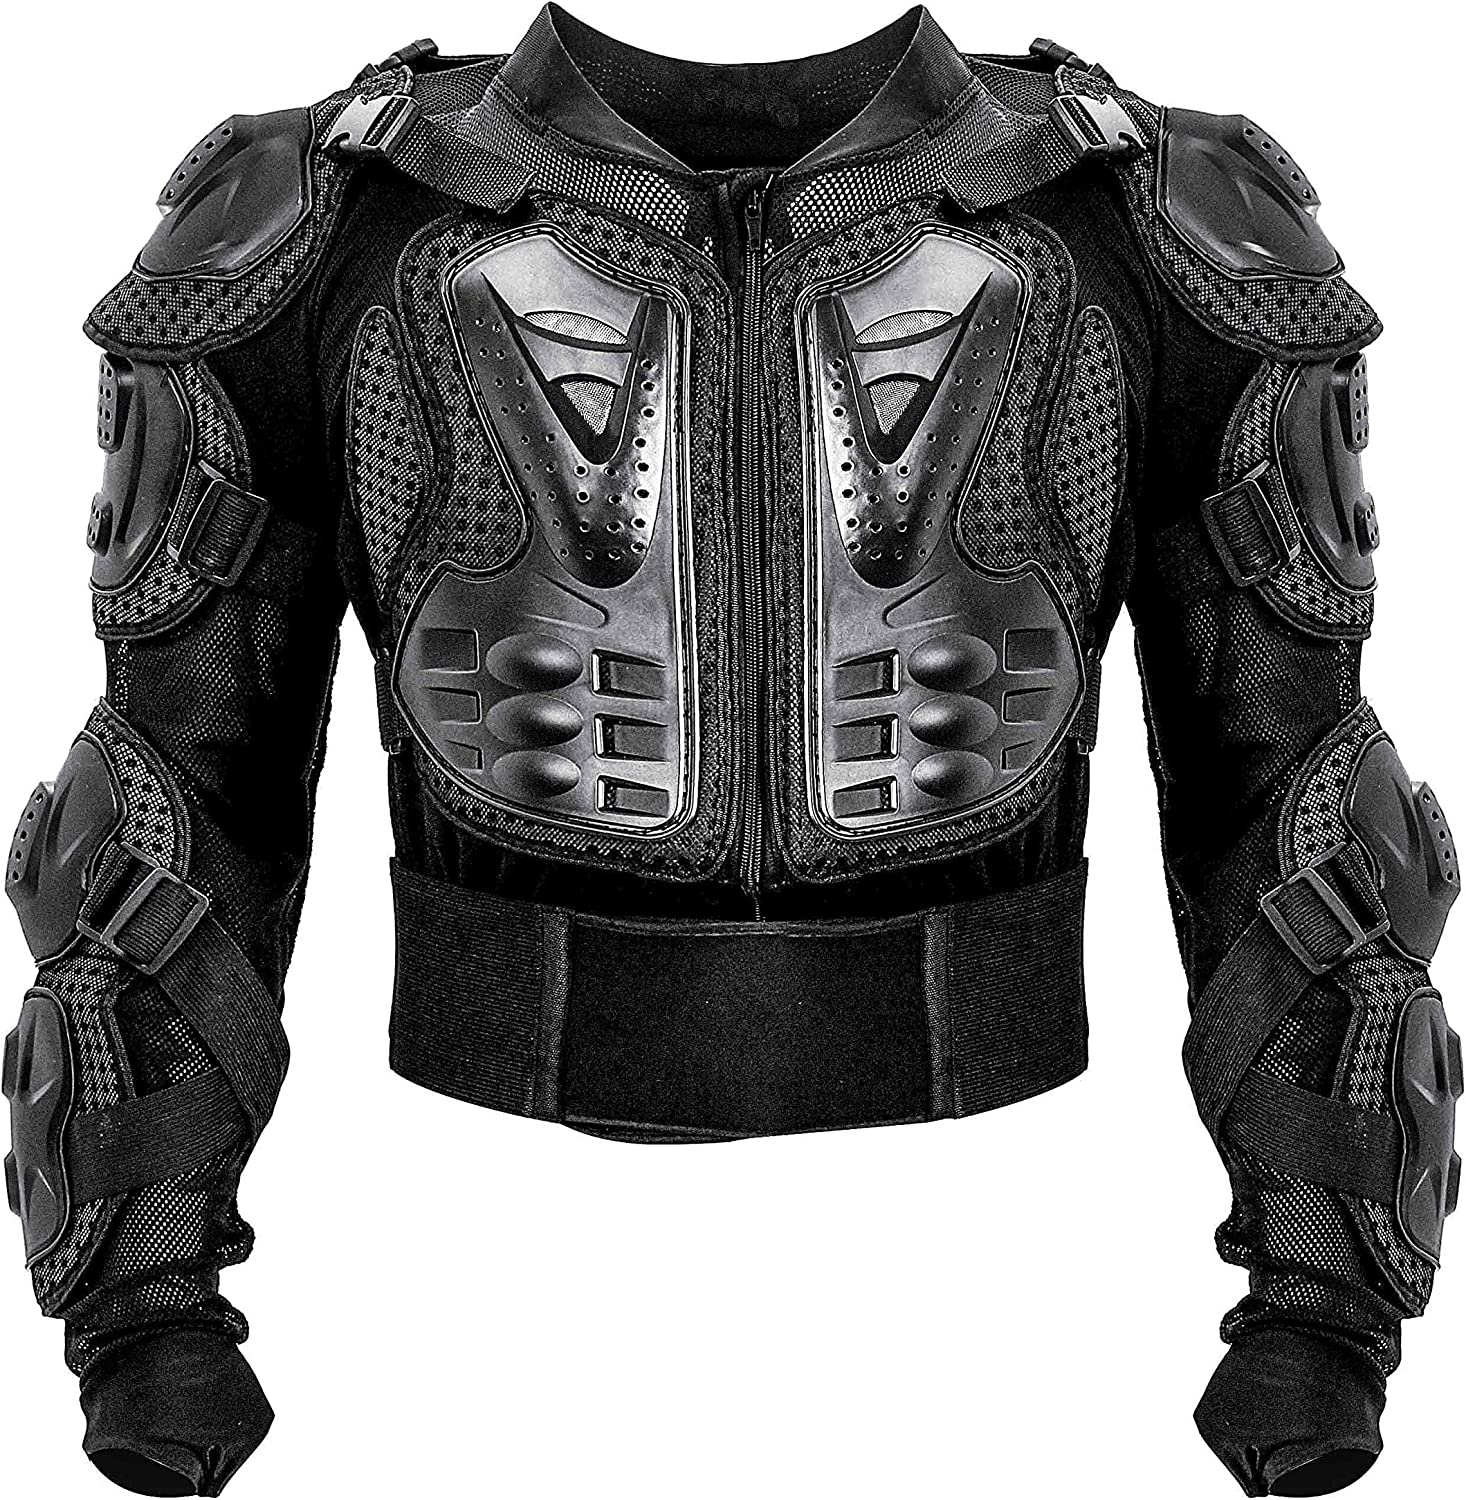 Motorcycle Armor Body Guard Vest Street Bike Riding Off-Road Racing Cycling Skiing Motocross Adult Chest Body Protector Shirt Jackets Clothing Men Sport Back Protection Vests Gear Protective